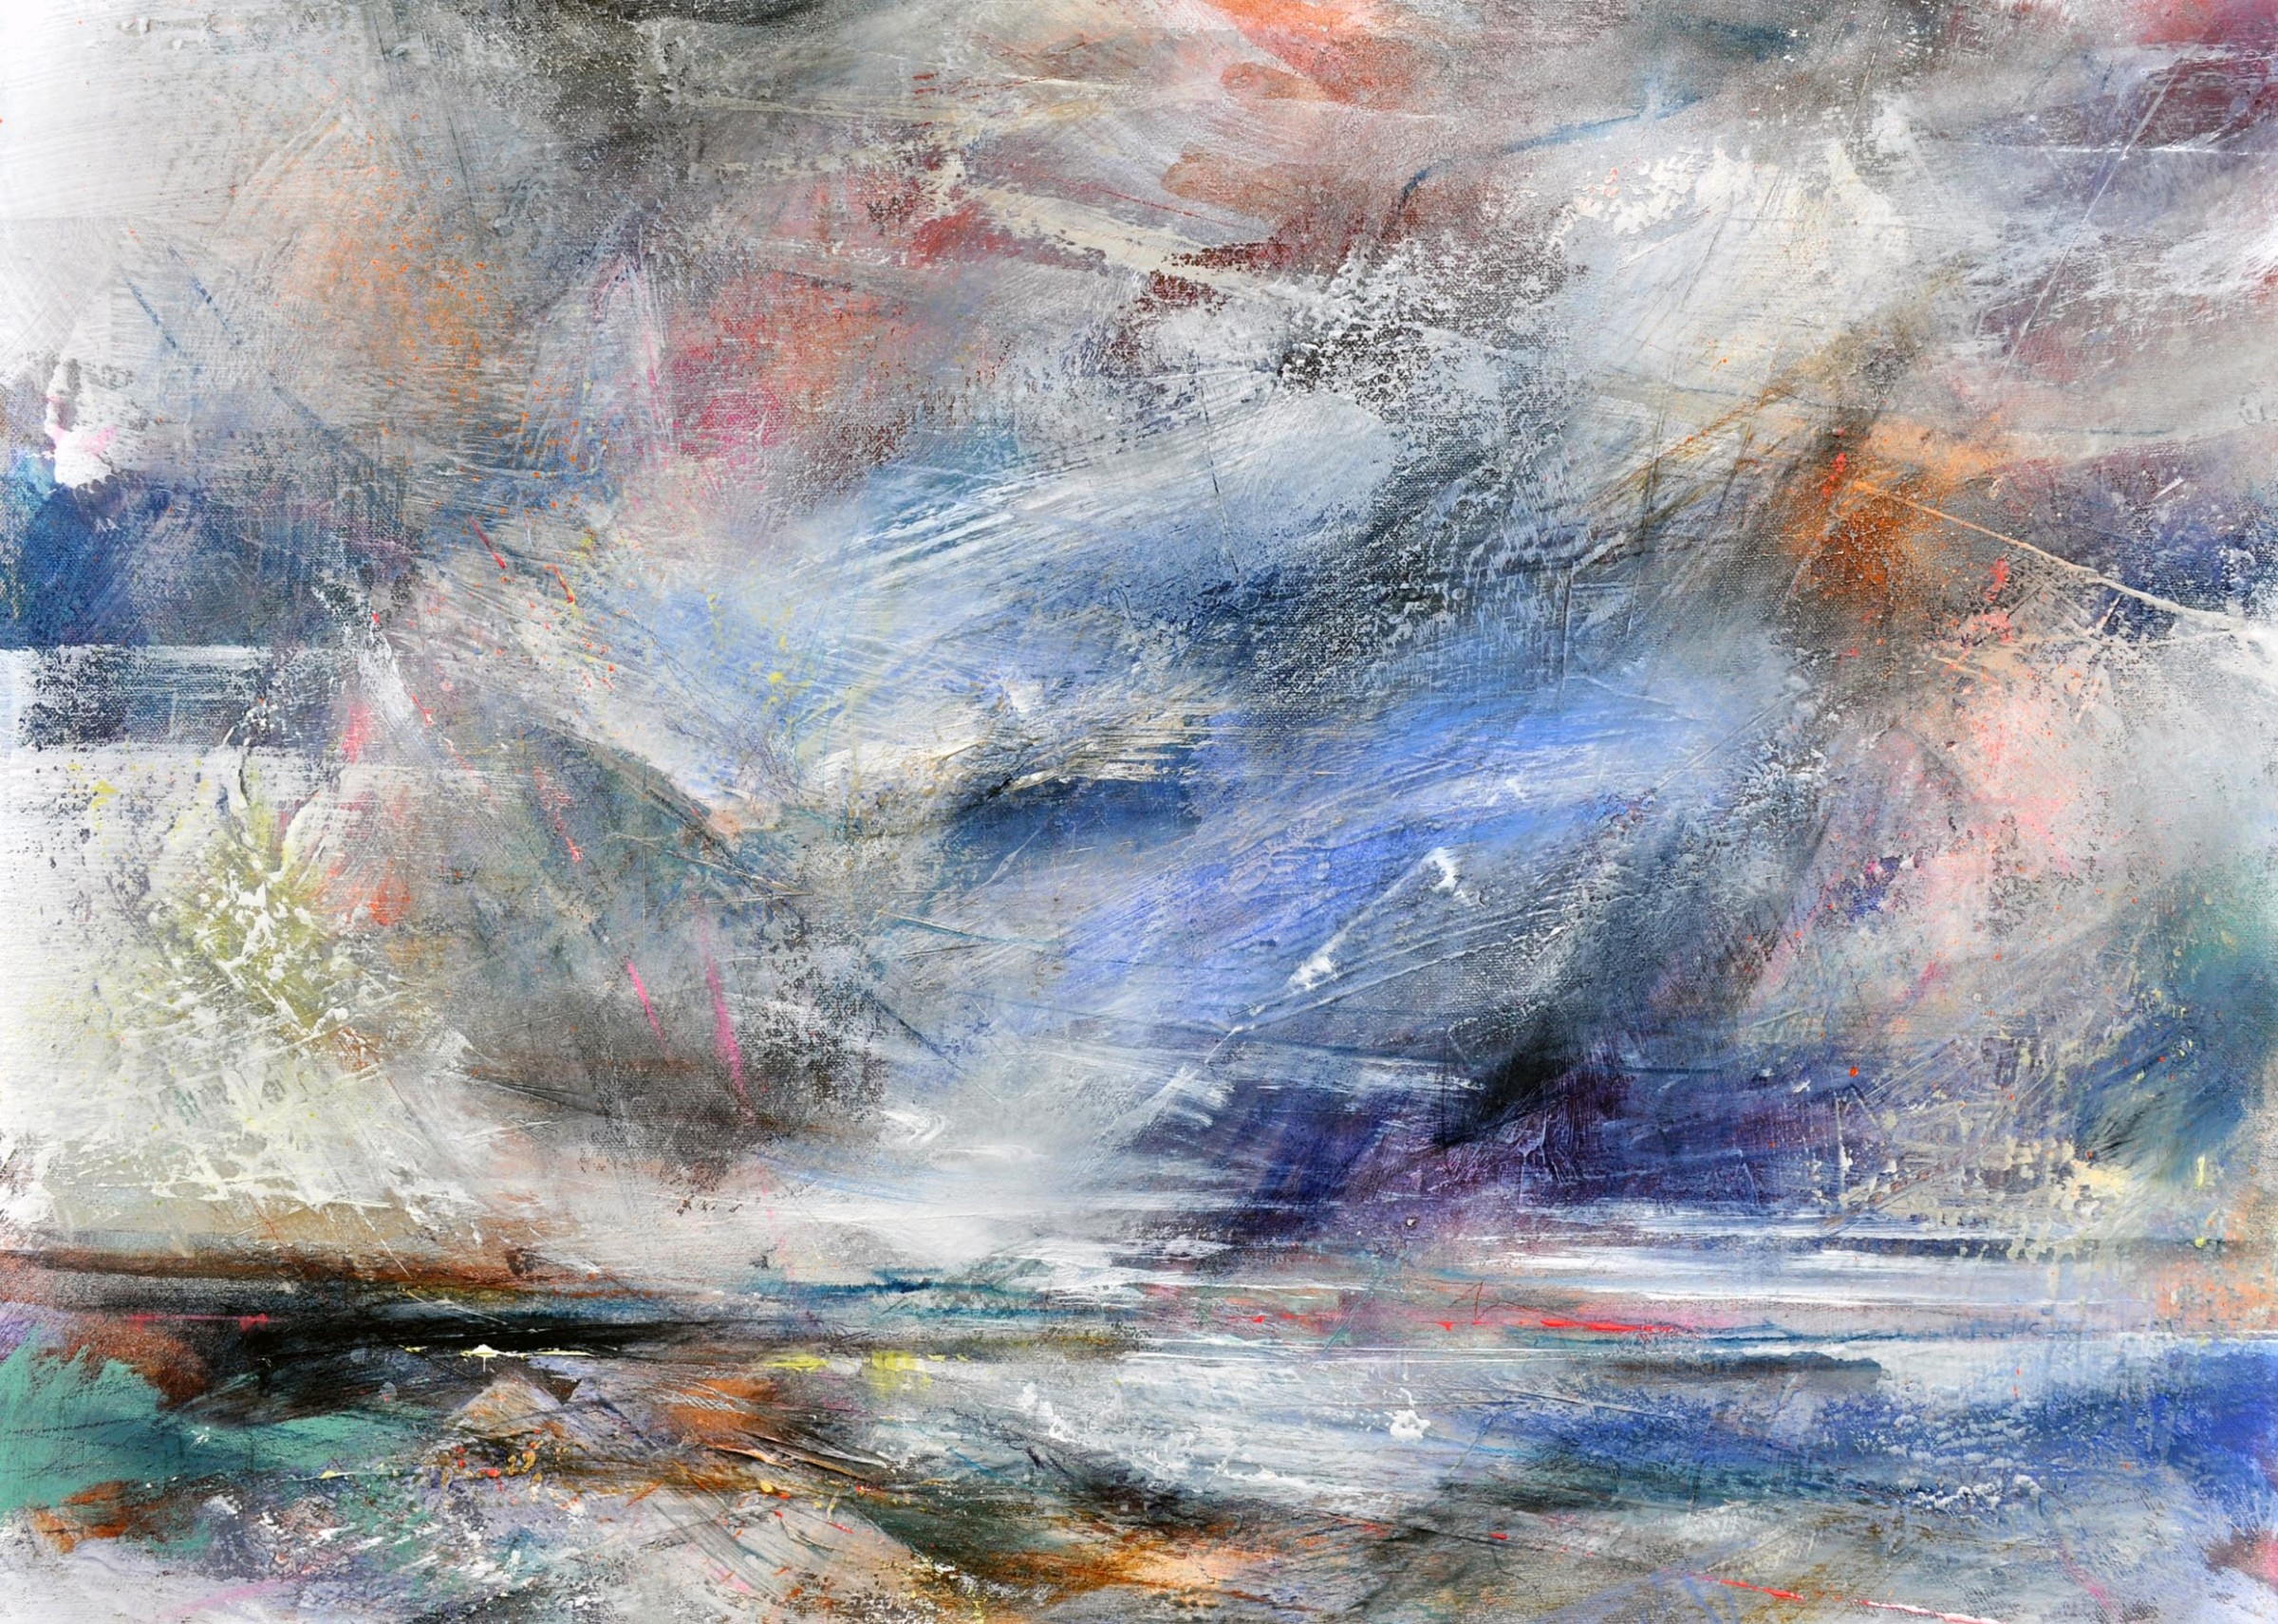 <span class=&#34;link fancybox-details-link&#34;><a href=&#34;/artists/90-freya-horsley/works/5539-freya-horsley-span-2018/&#34;>View Detail Page</a></span><div class=&#34;artist&#34;><strong>Freya Horsley</strong></div> <div class=&#34;title&#34;><em>Span</em>, 2018</div> <div class=&#34;signed_and_dated&#34;>signed on the reverse</div> <div class=&#34;medium&#34;>mixed media on canvas</div> <div class=&#34;dimensions&#34;>50 x 70 cm<br /> 19 3/4 x 27 1/2 inches</div><div class=&#34;price&#34;>£990.00</div><div class=&#34;copyright_line&#34;>£ 99 x 10 Months, OwnArt 0% APR</div>